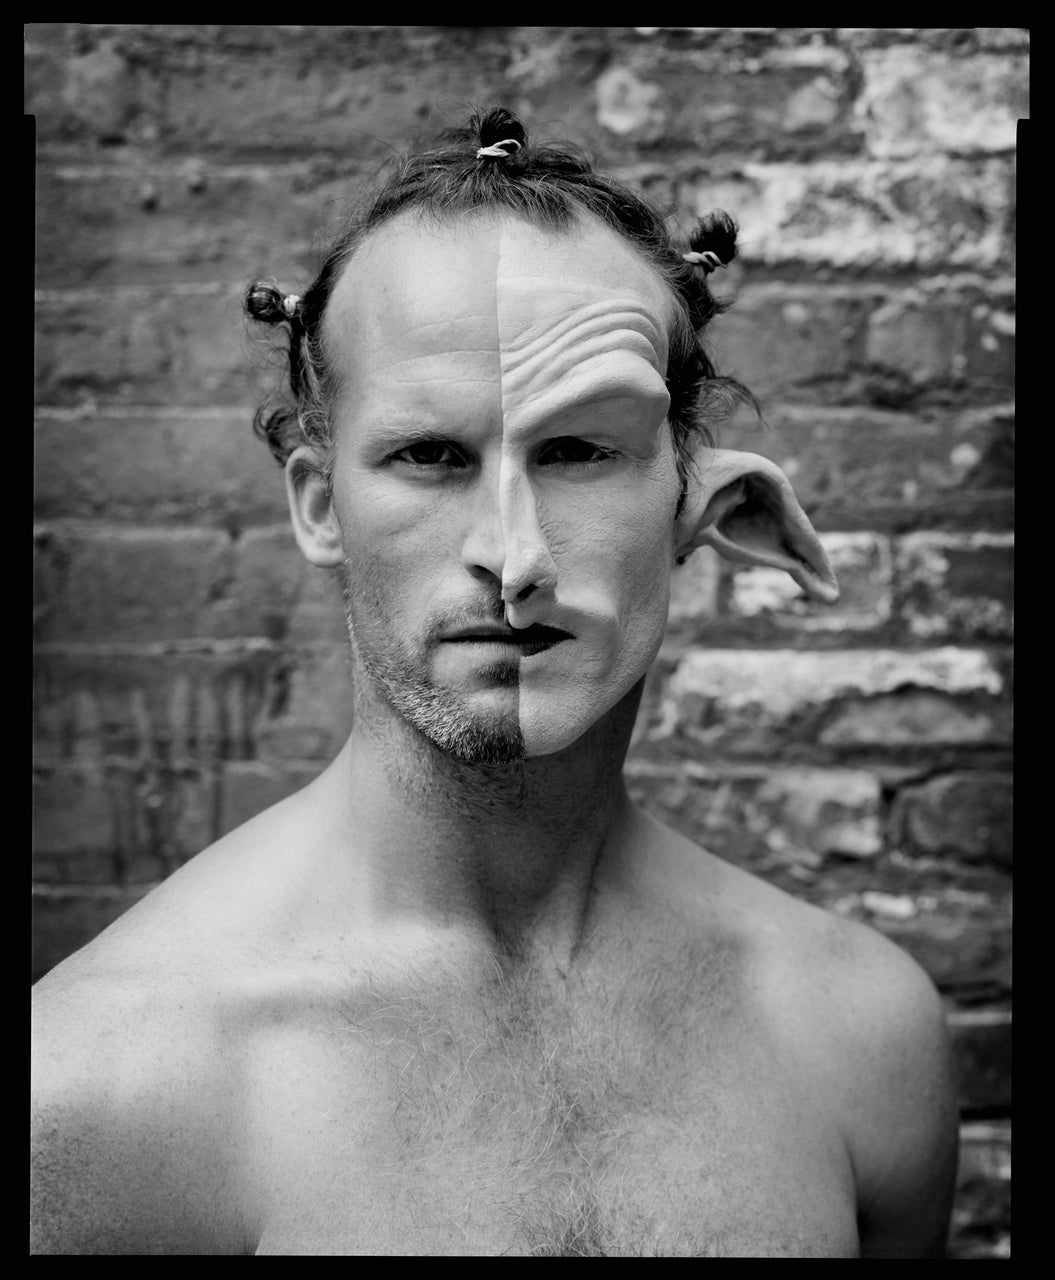 Matthew Barney, New York, NY, 2004